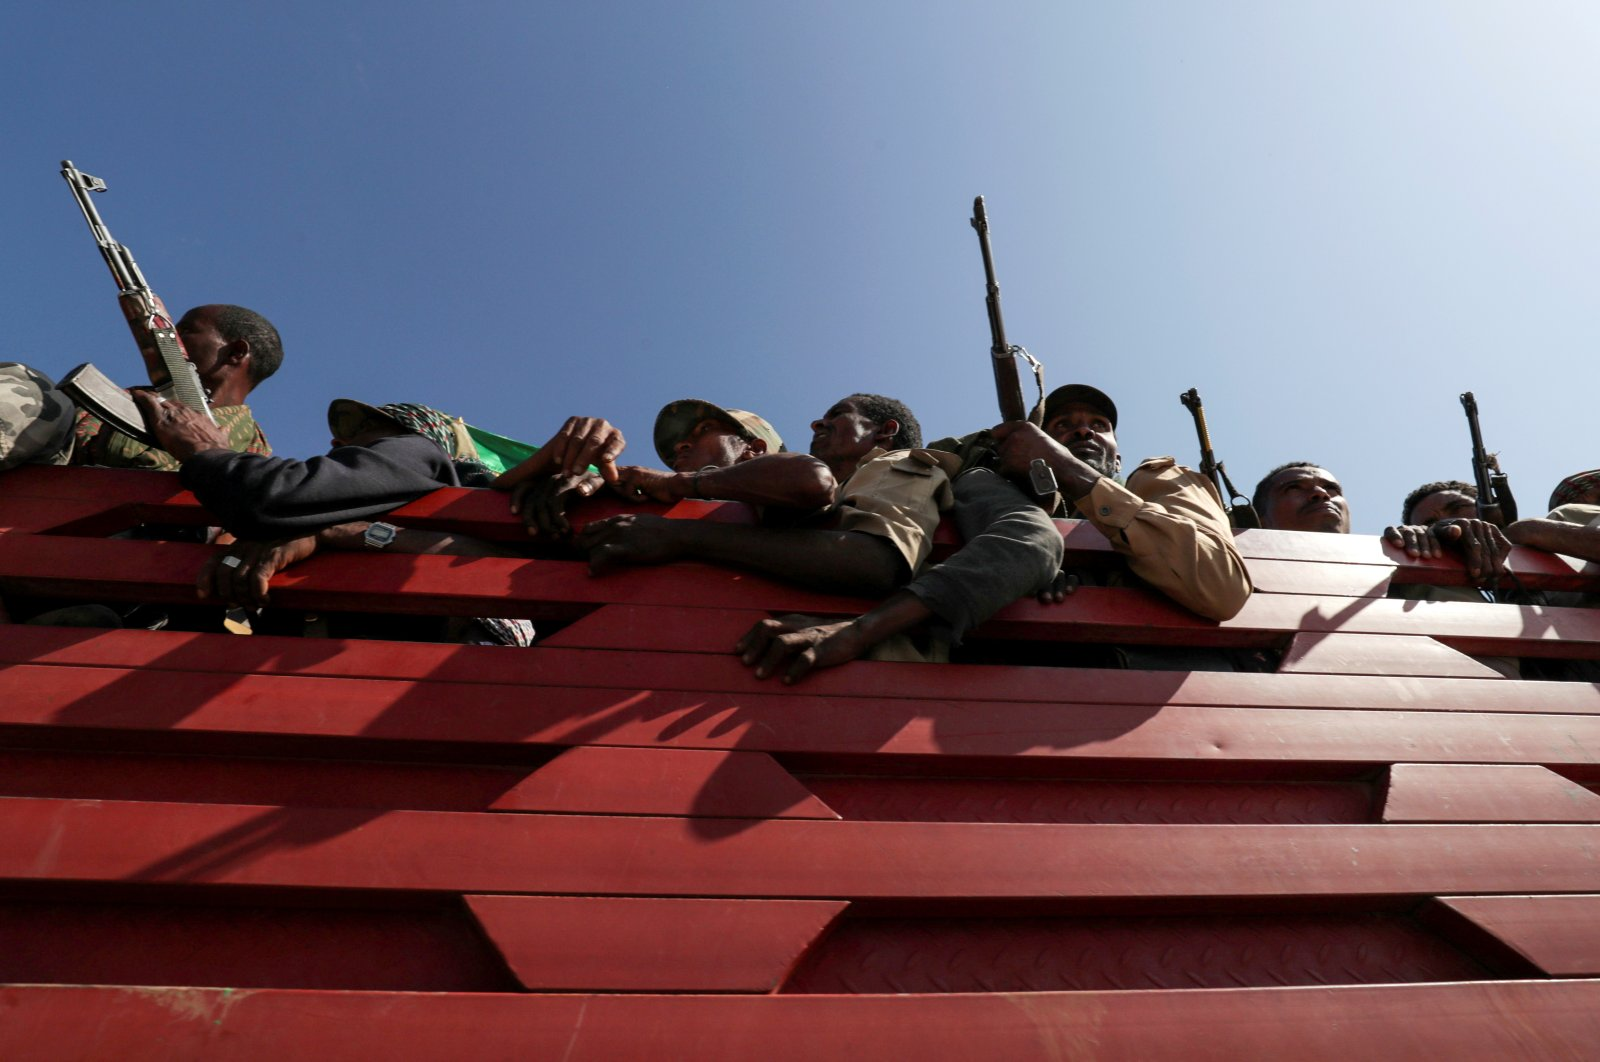 Members of Amhara region militias ride on their truck as they head to the mission to face the Tigray People's Liberation Front (TPLF), in Sanja, Amhara region near a border with Tigray, Ethiopia, Nov. 9, 2020. (Reuters Photo)